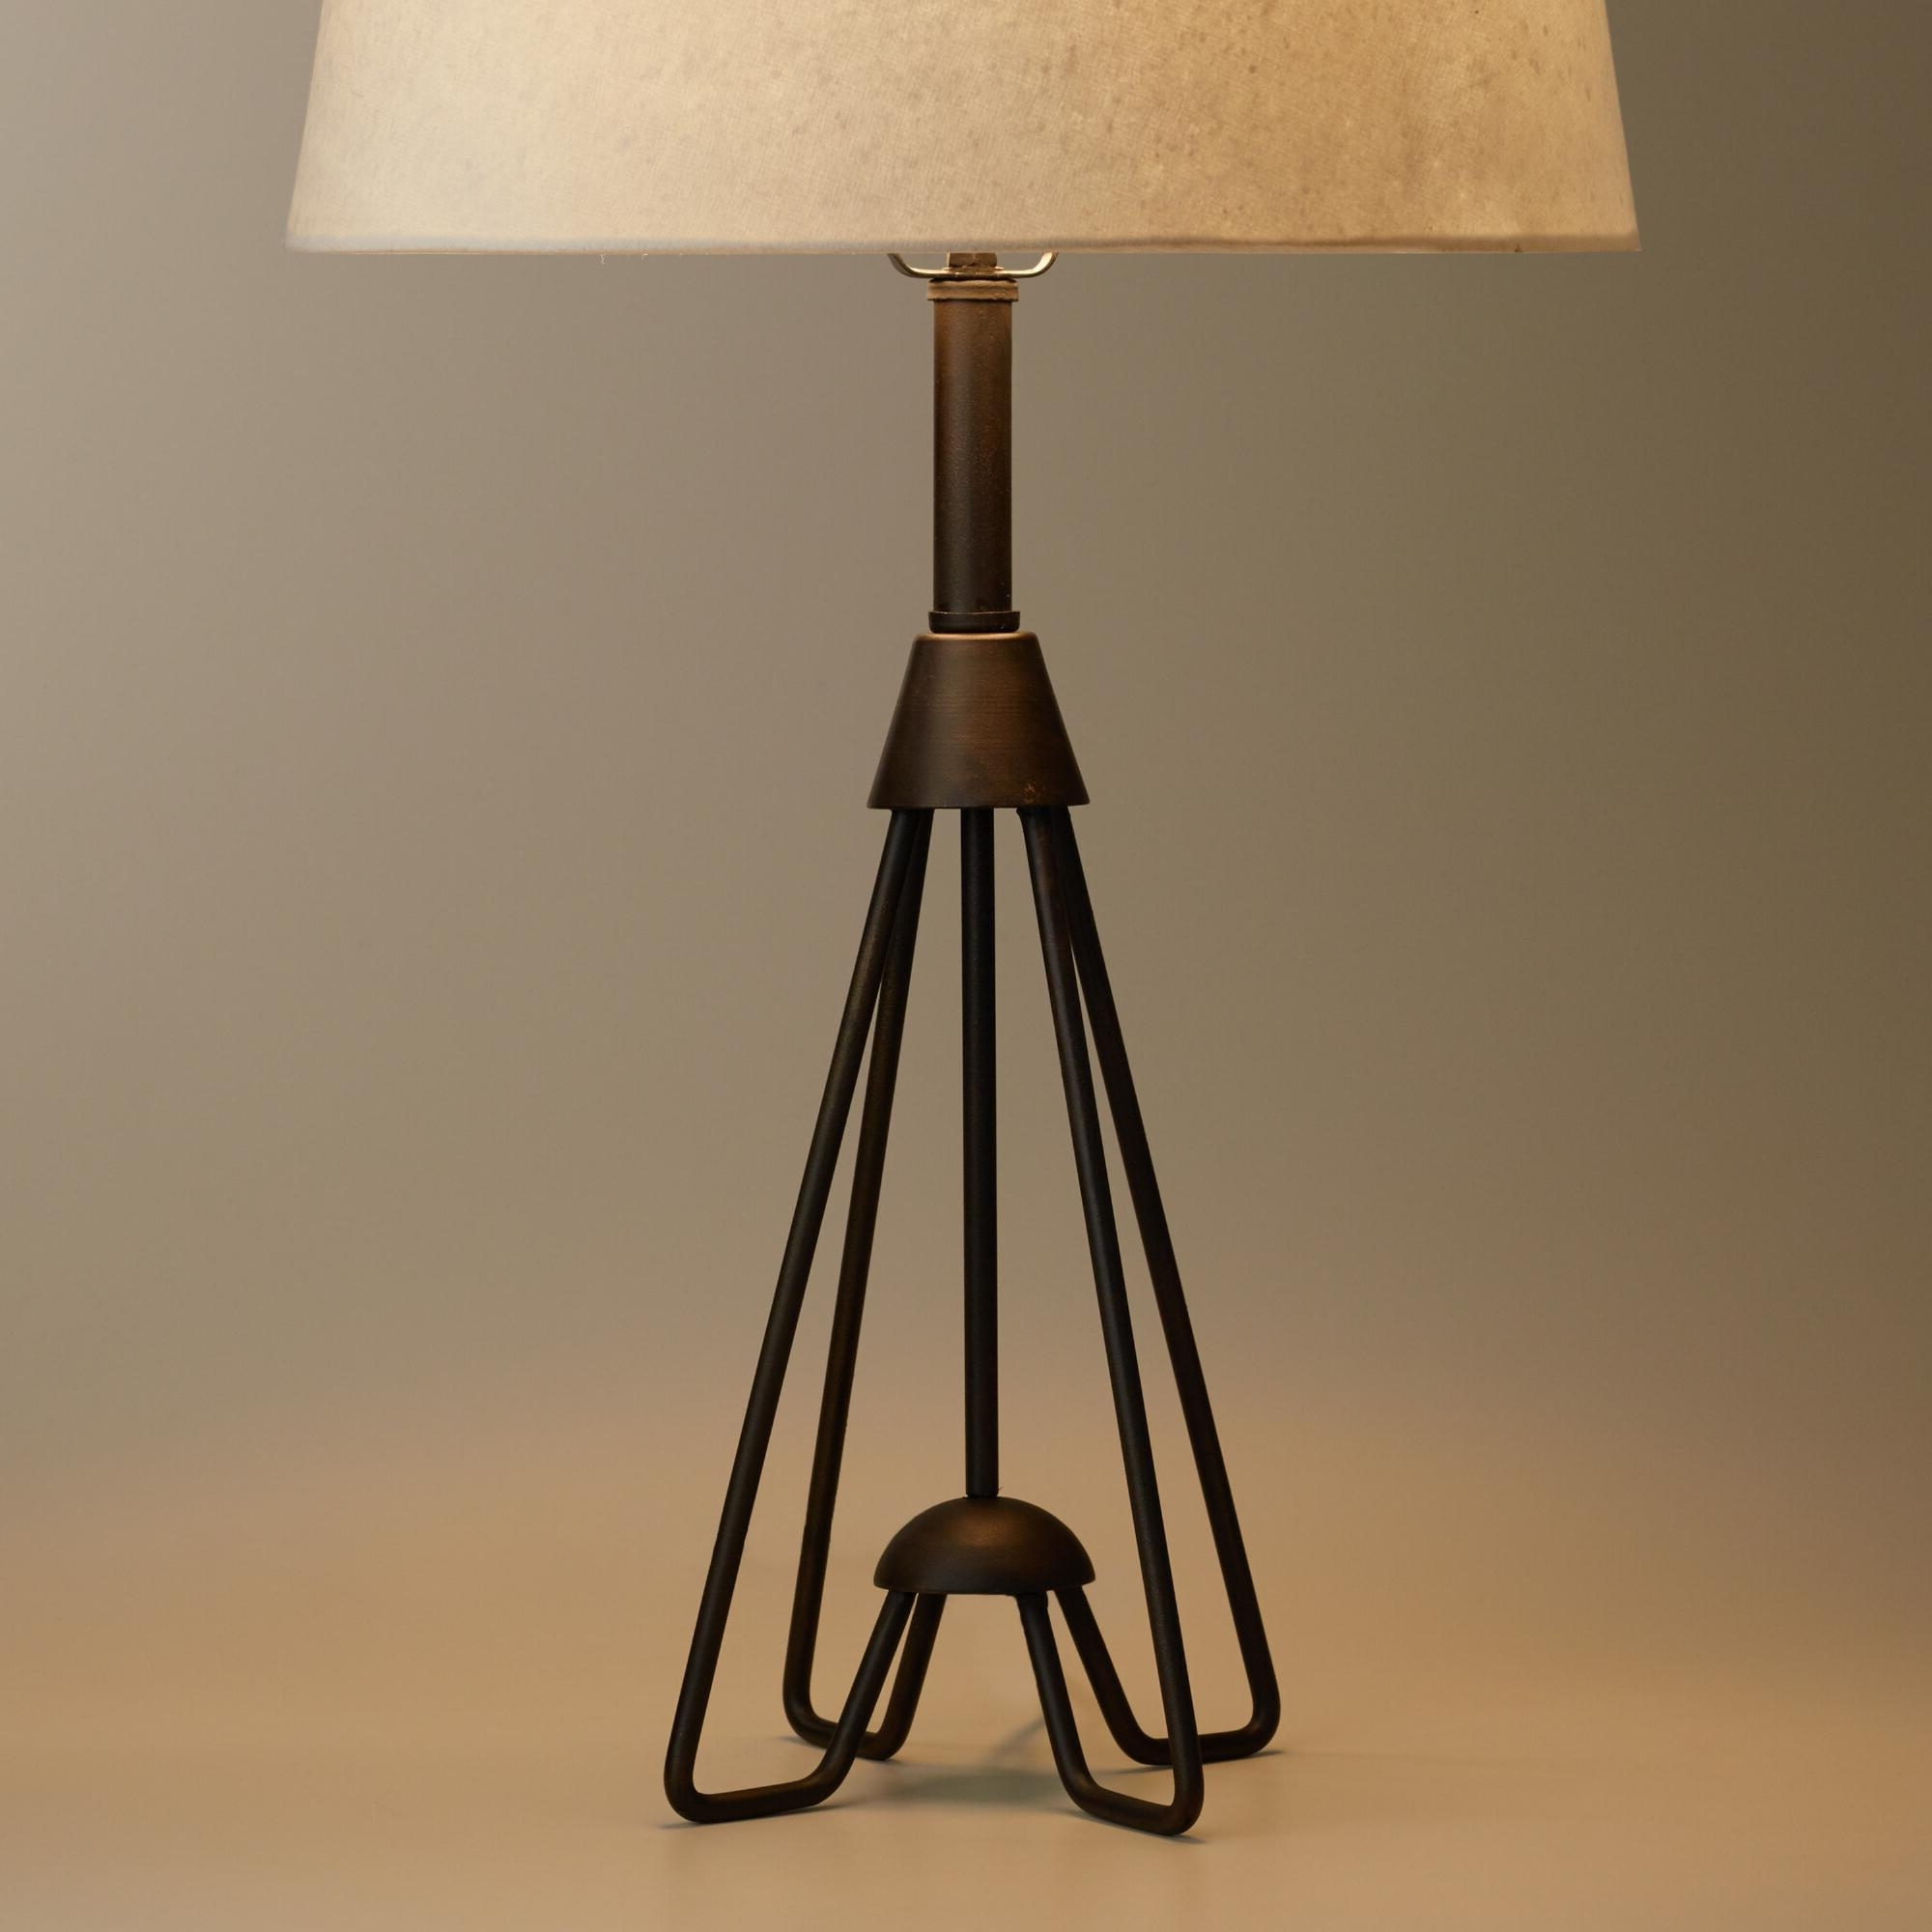 Wrought Iron Living Room Table Lamps With Fashionable Lamp : Wrought Iron Table Lamps For Living Room Antique Black Rod (Gallery 5 of 15)